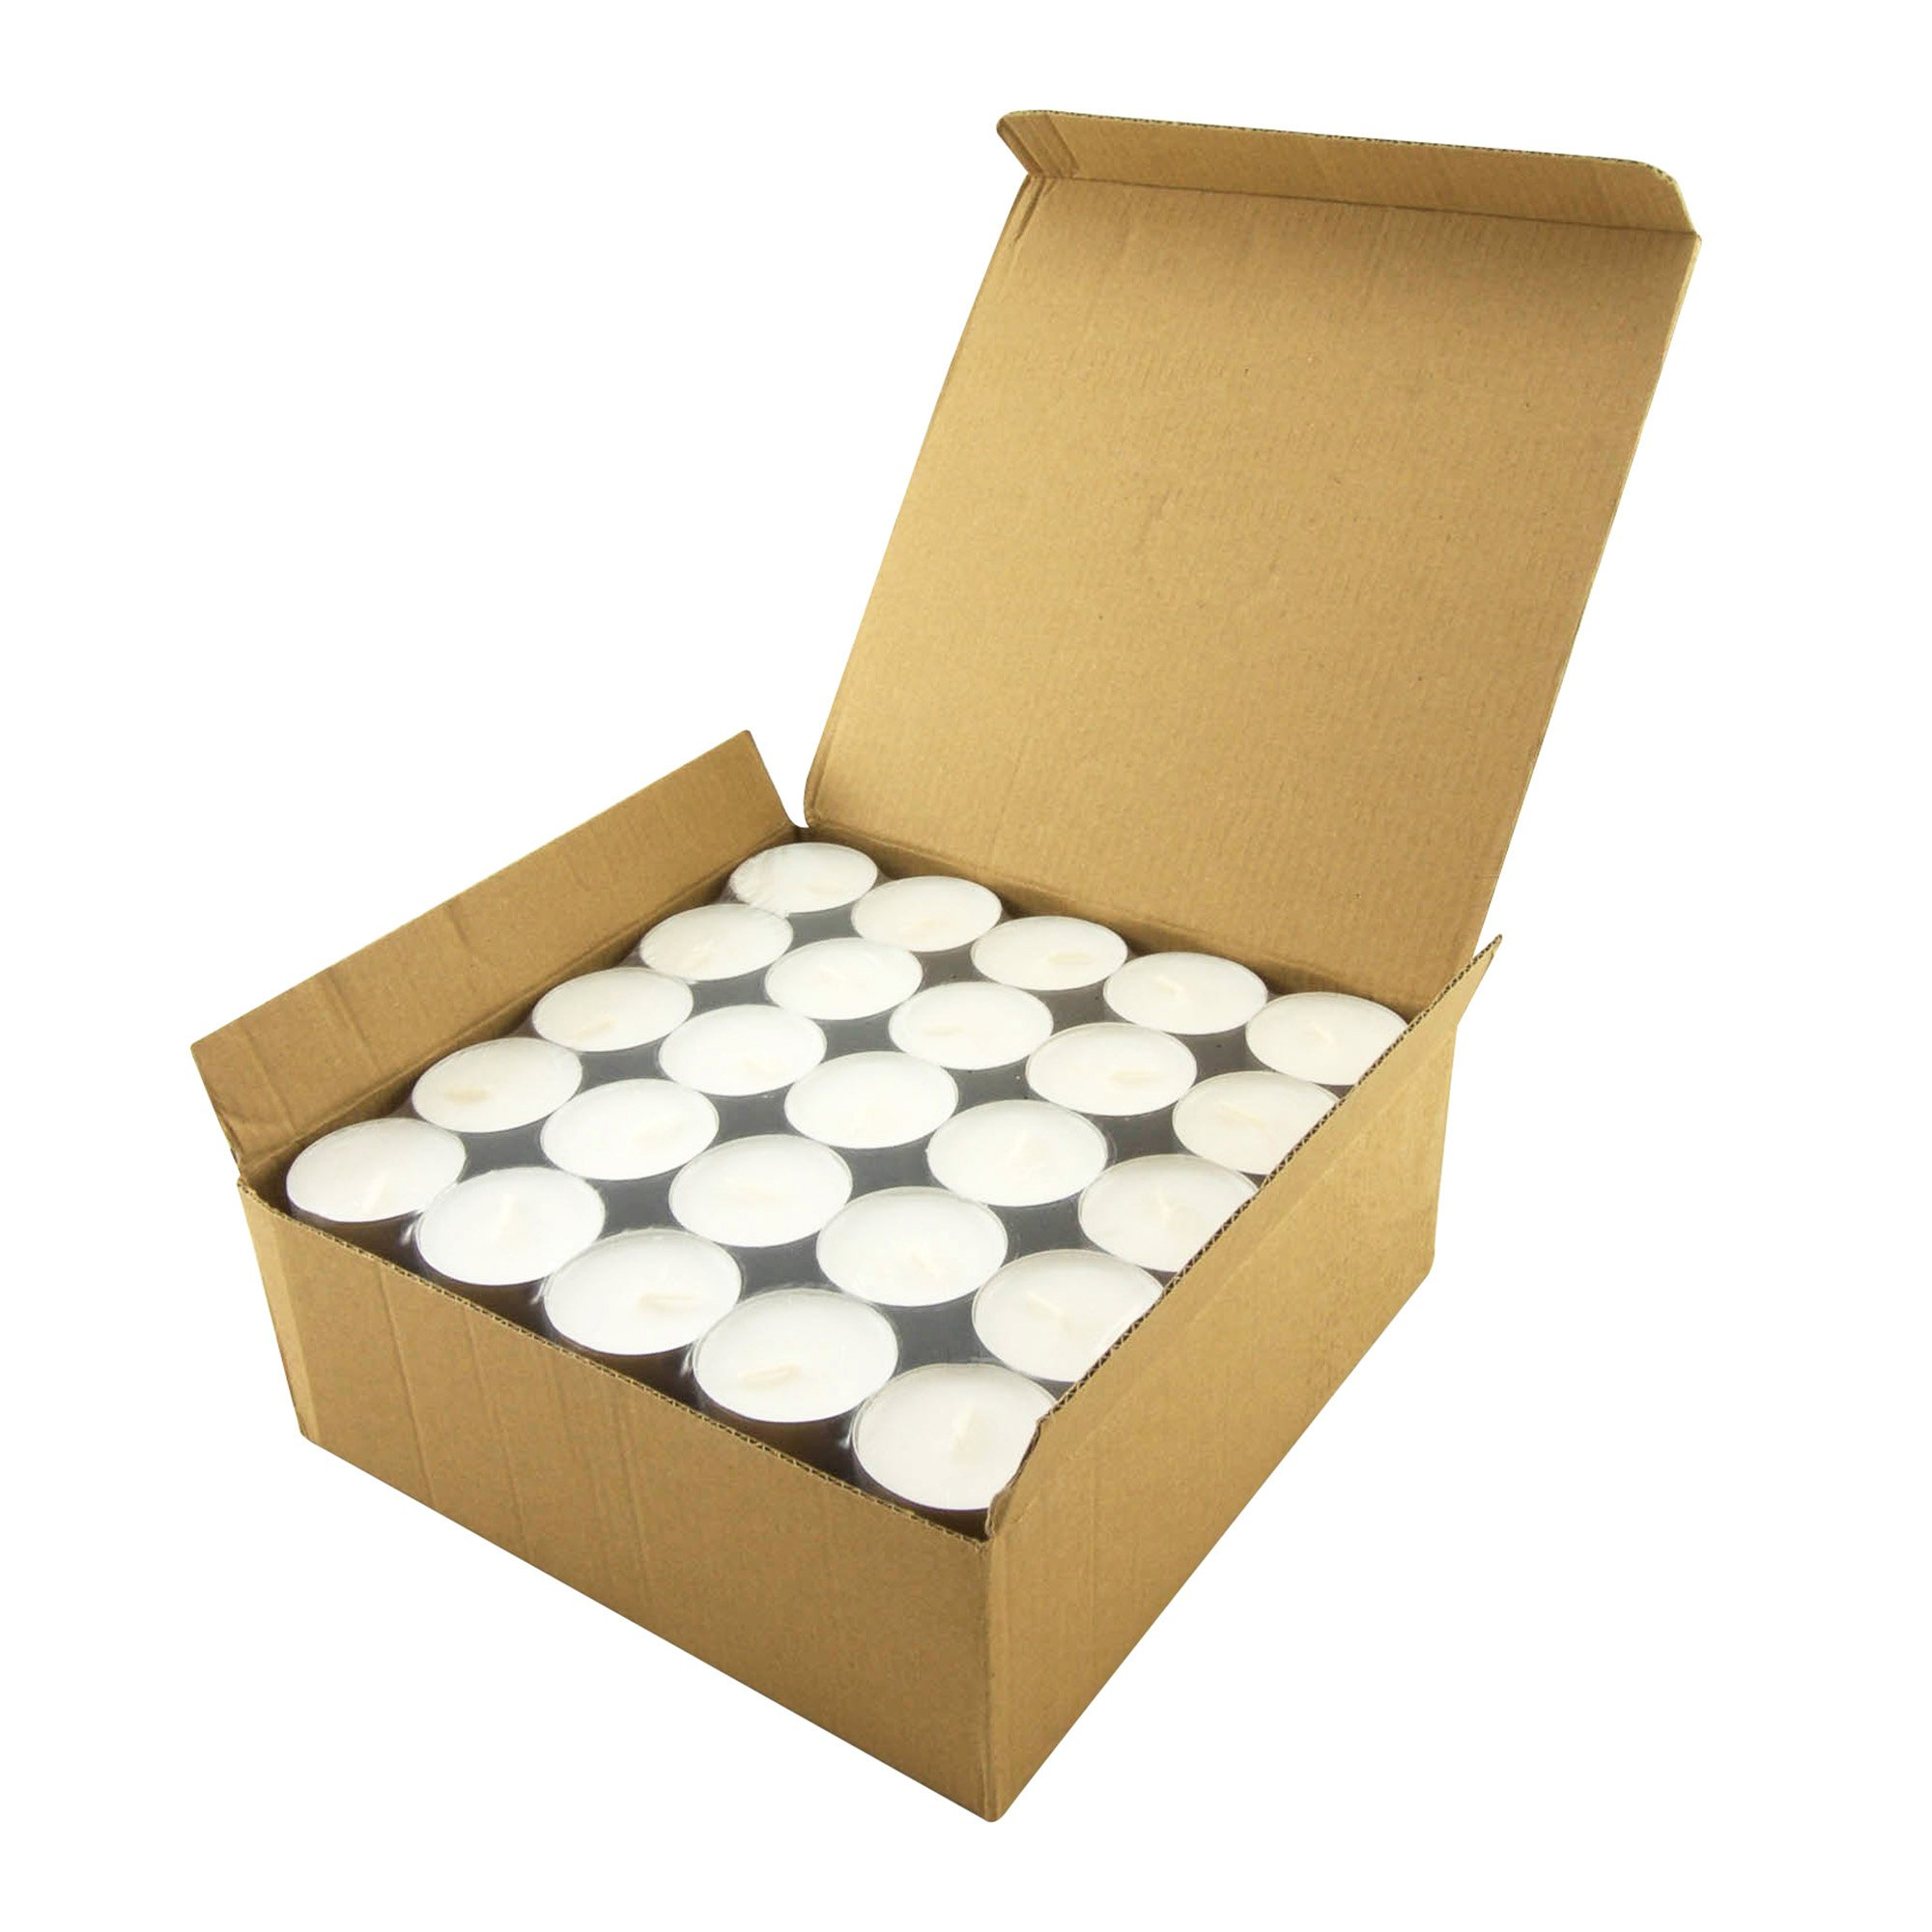 Stonebriar Long Burning Tealight Candles - 8 Hours - White - Unscented - 100 Pack